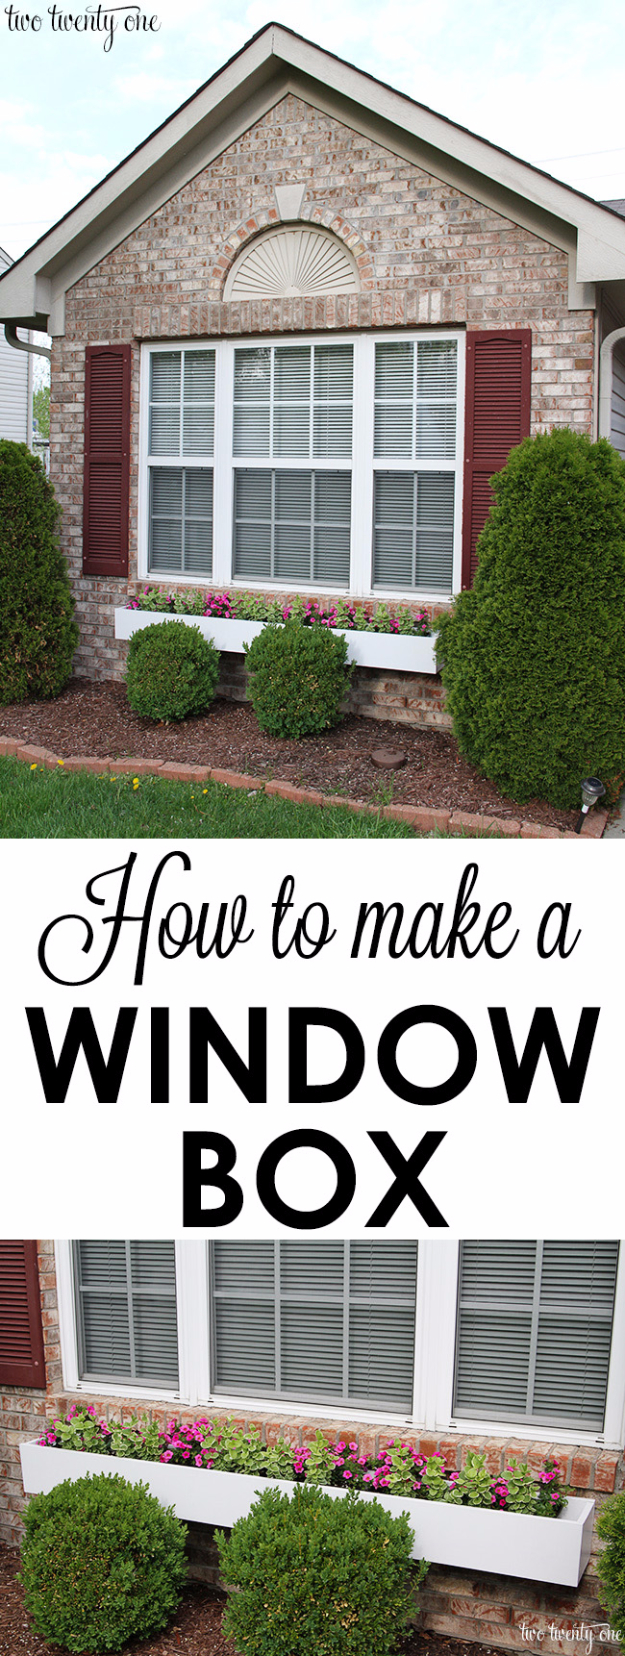 Creative Ways to Increase Curb Appeal on A Budget - DIY Window Box - Cheap and Easy Ideas for Upgrading Your Front Porch, Landscaping, Driveways, Garage Doors, Brick and Home Exteriors. Add Window Boxes, House Numbers